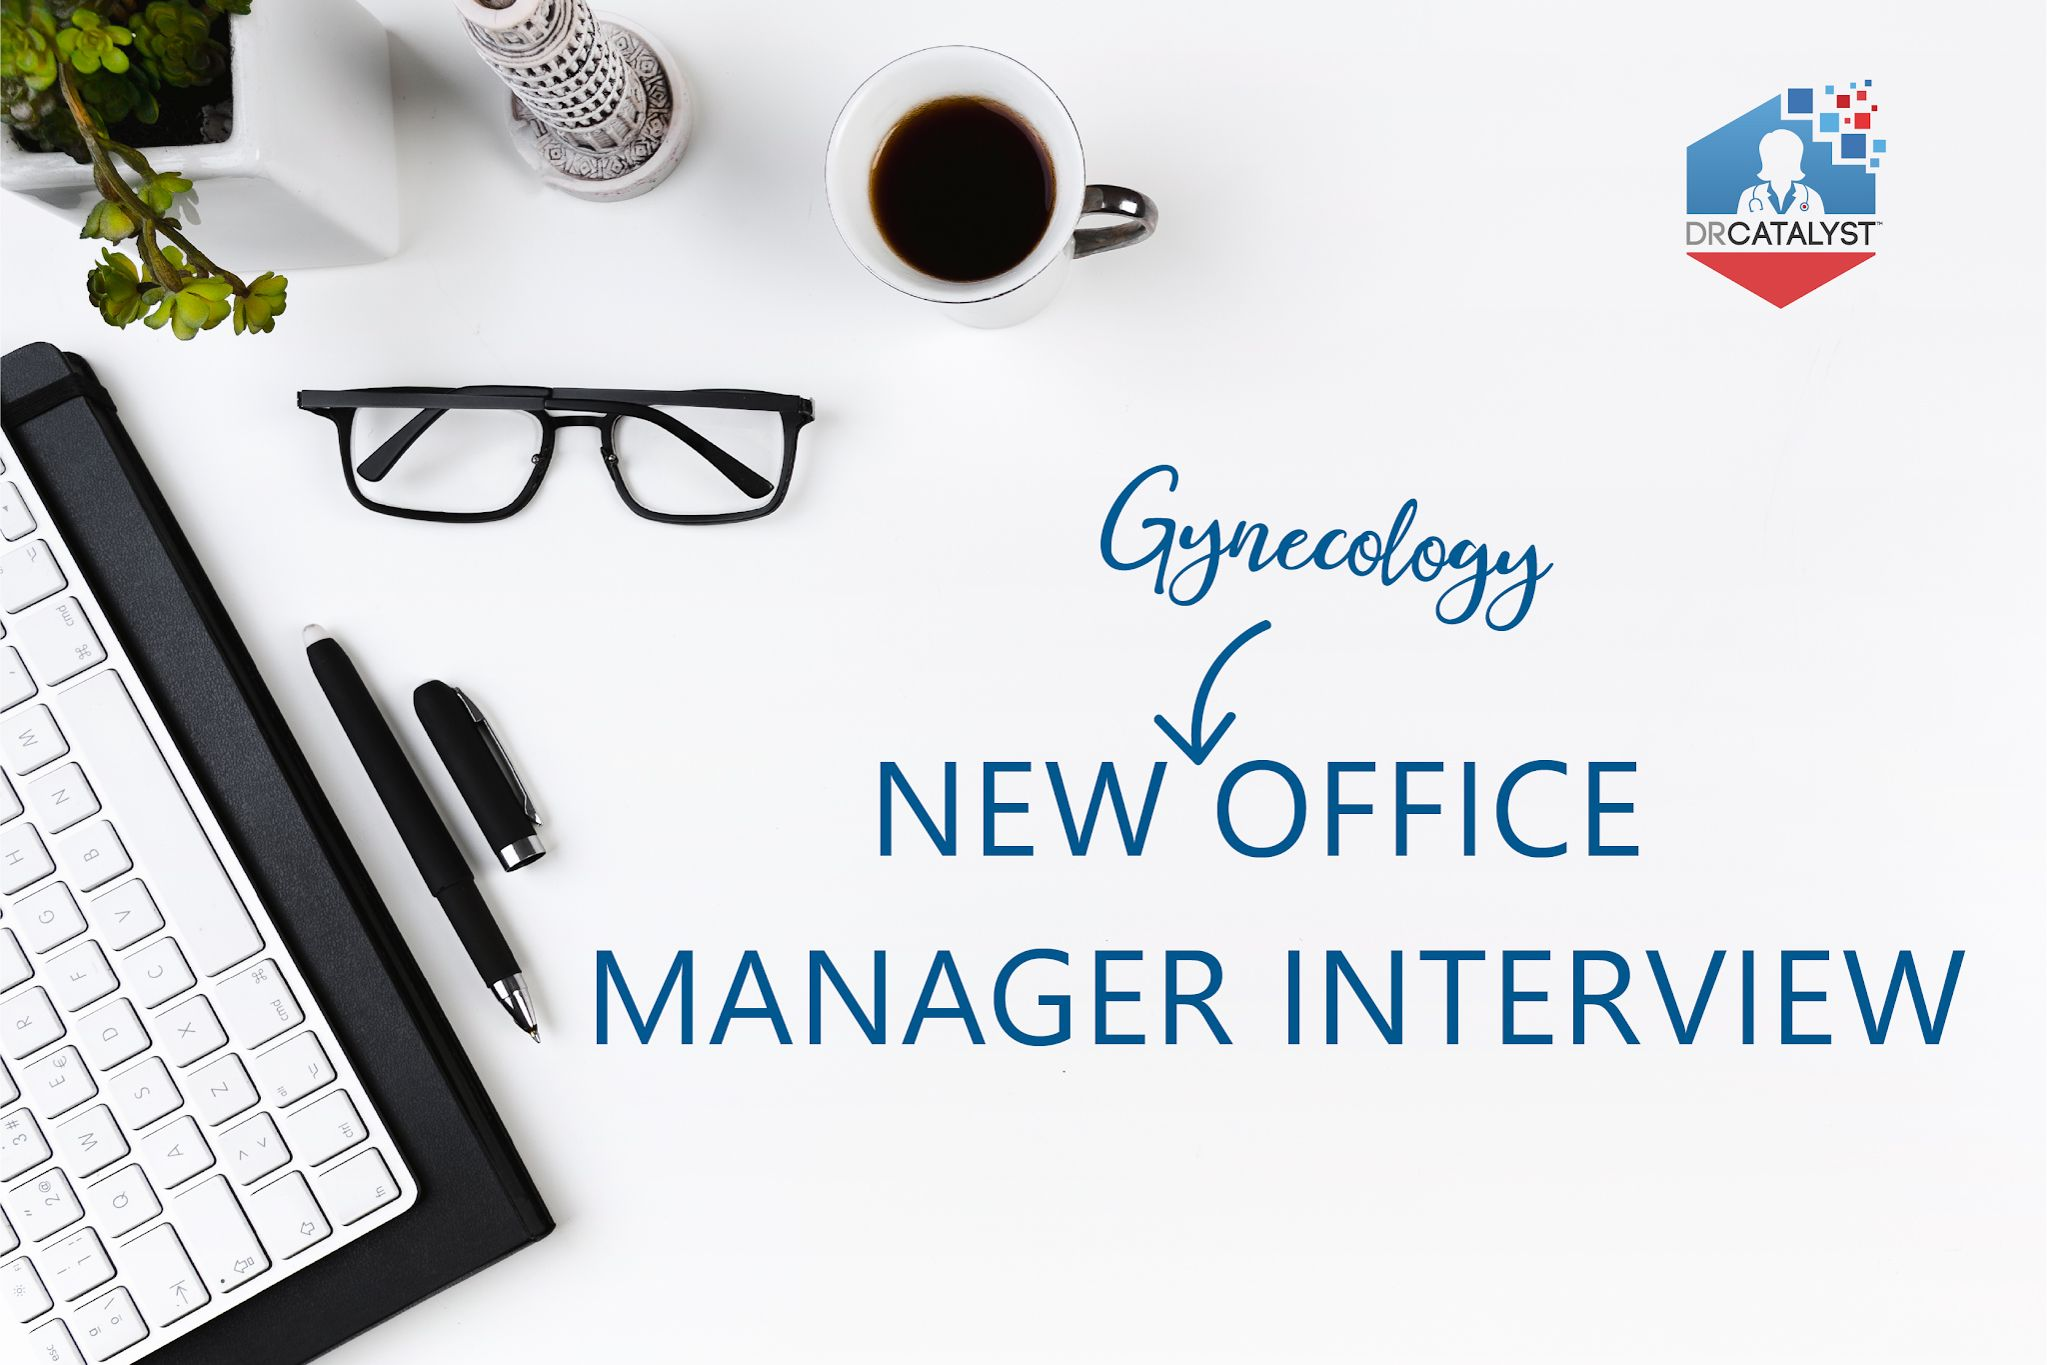 new office manager interview_gynecology